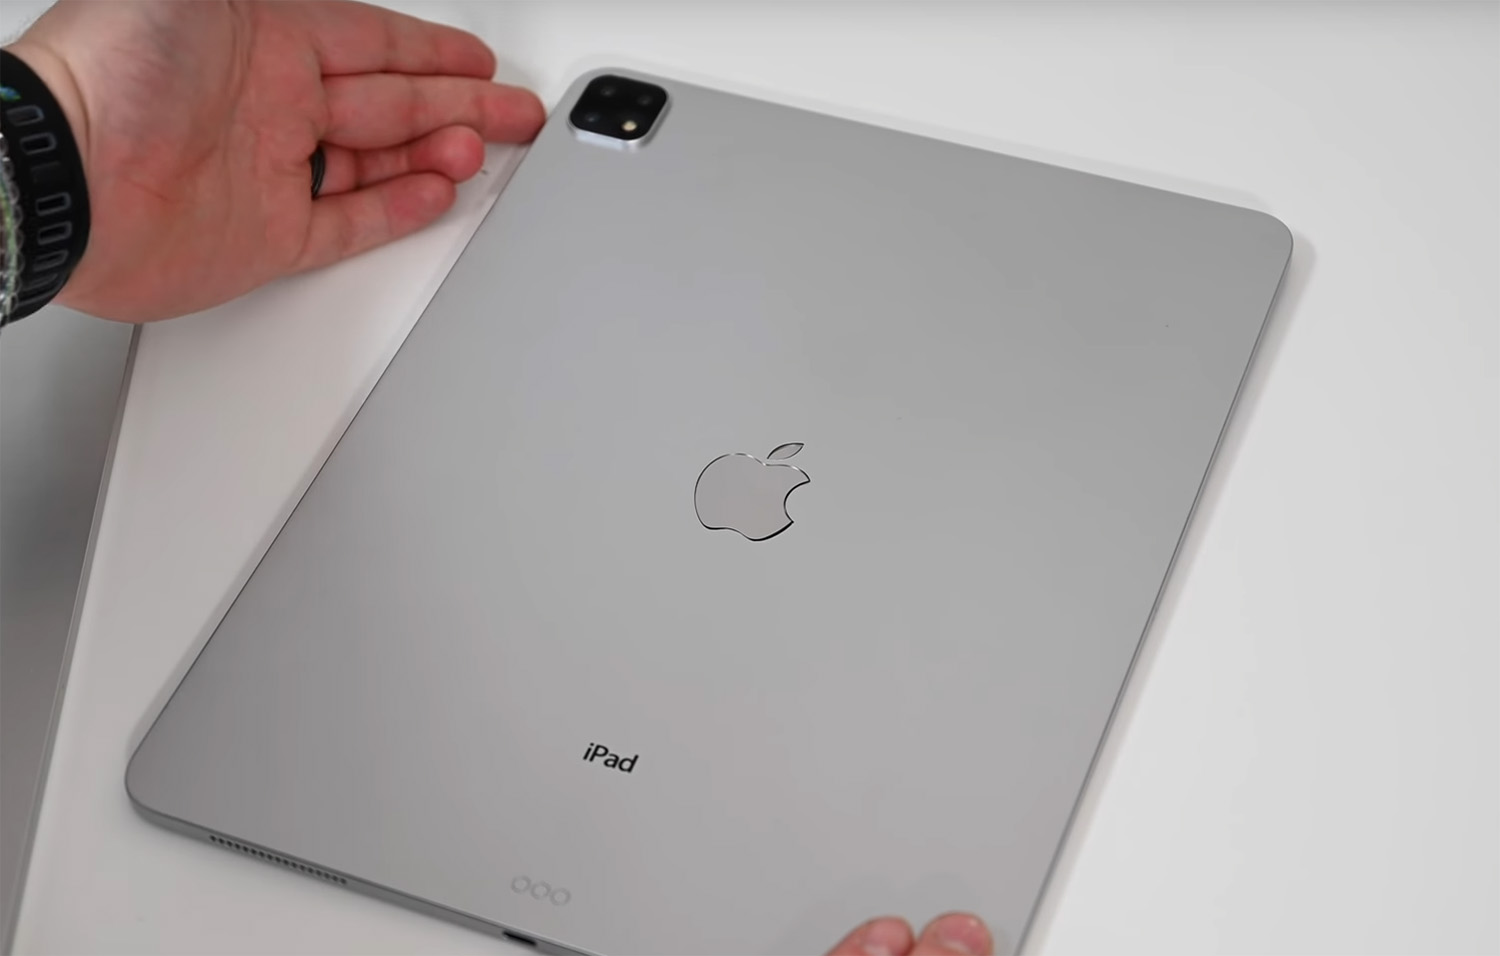 2019 iPad Pro Mockup Video Shows Triple Camera, USB-C & Slim Design